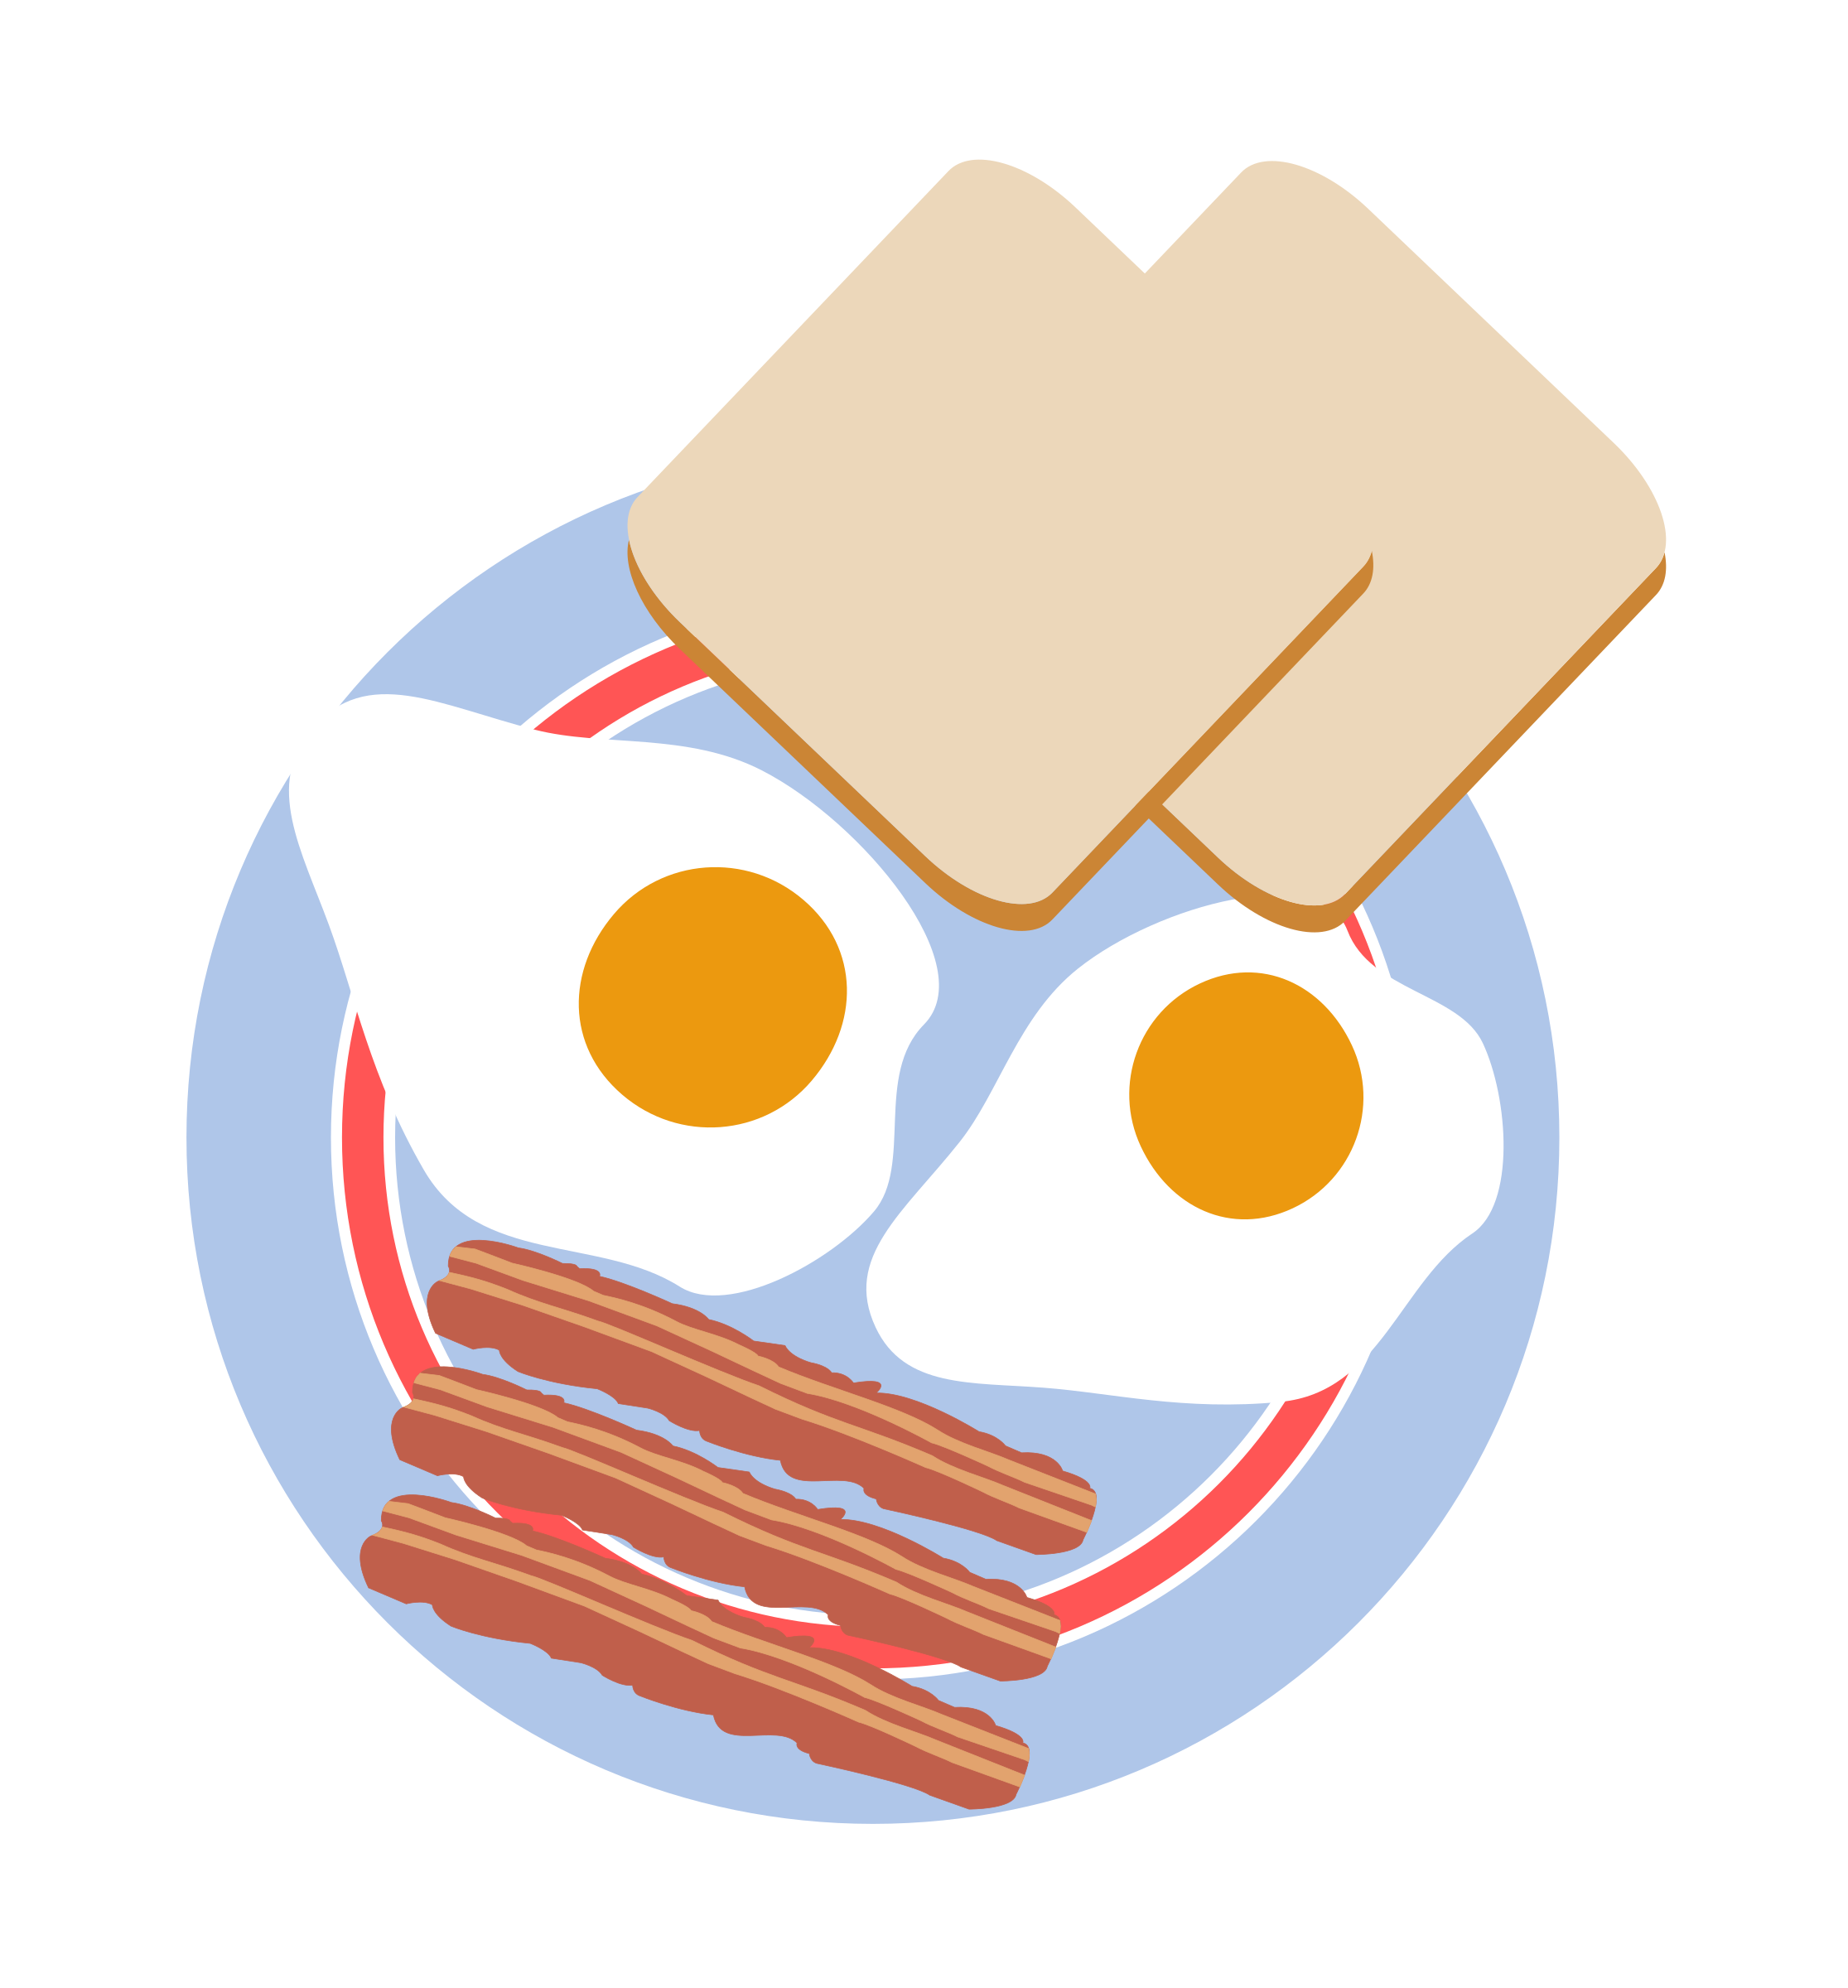 eggs and bacon png